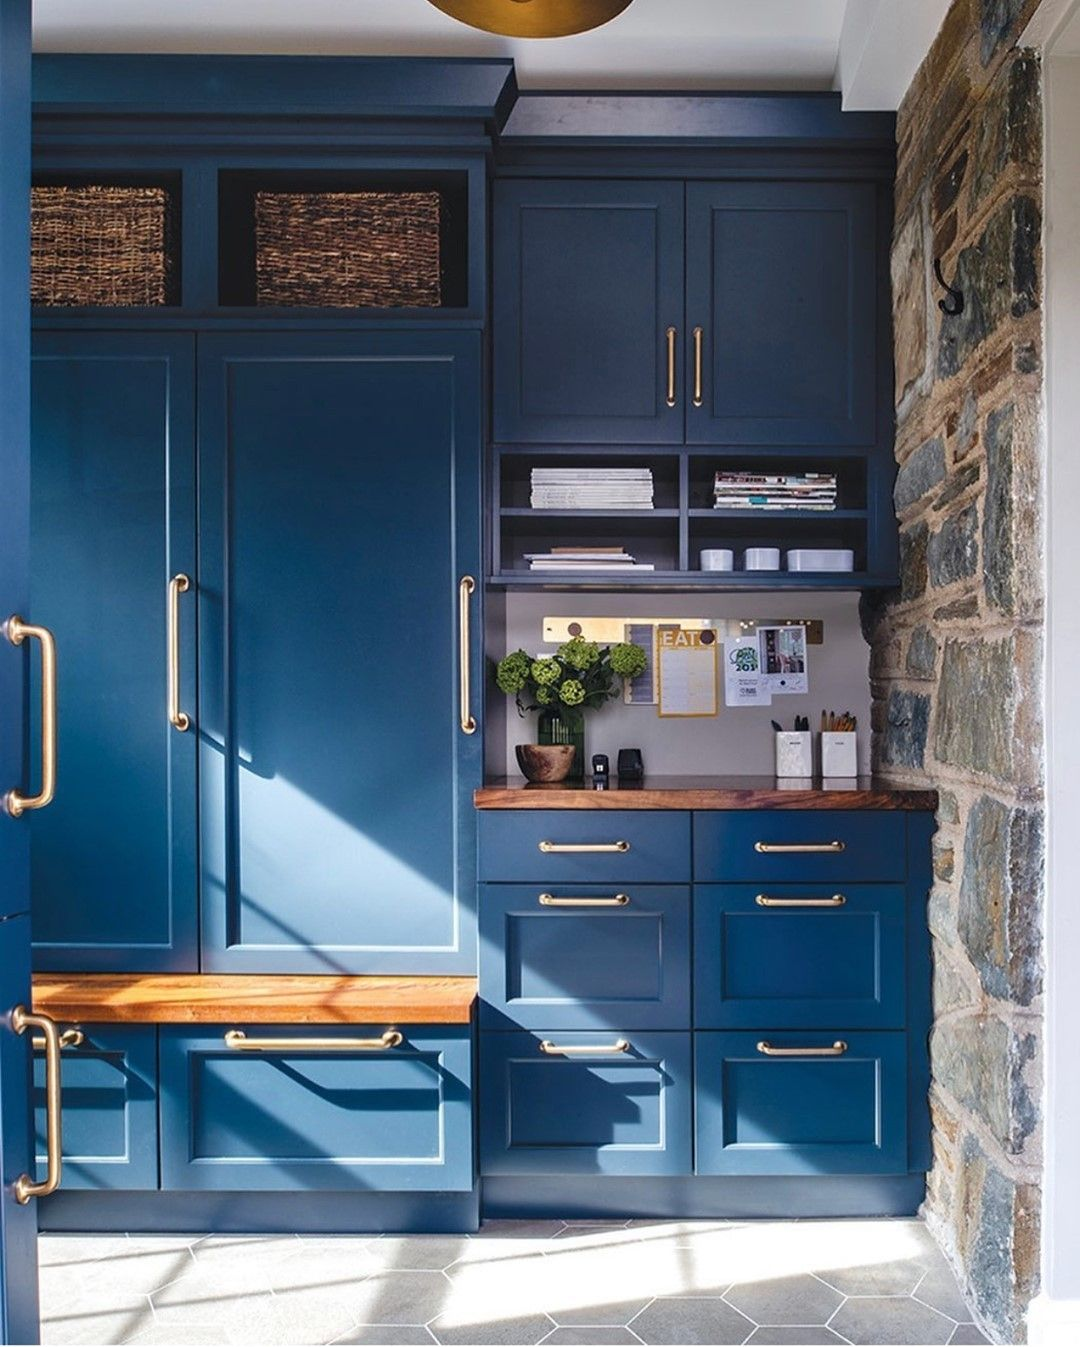 Lorna Gross On Instagram Mudrooms Can Be Beautiful Too This One Features A Moody Blue Palette Blended Mater In 2021 Painted Built Ins Wood Mode Built In Cabinets